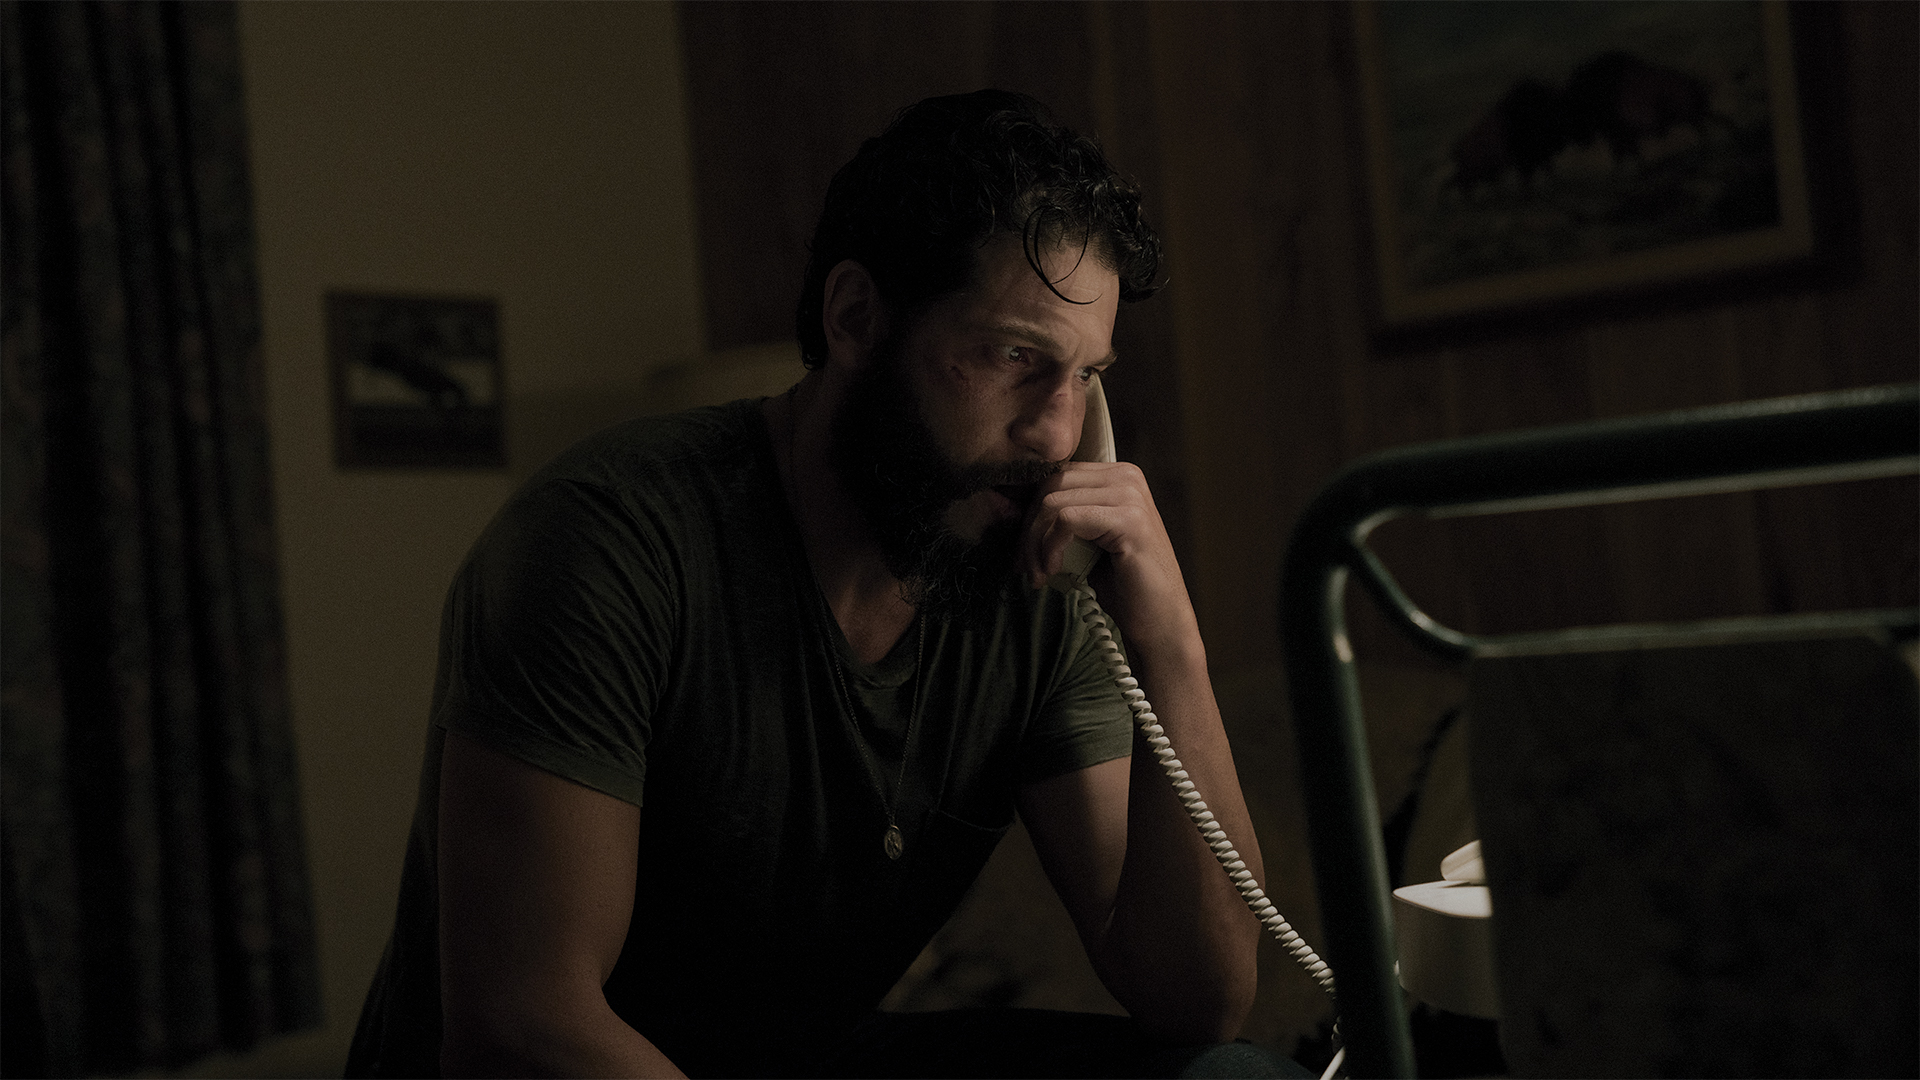 Jon Bernthal as Sam in SWEET VIRGINIA. Photographer: Keri Anderson.